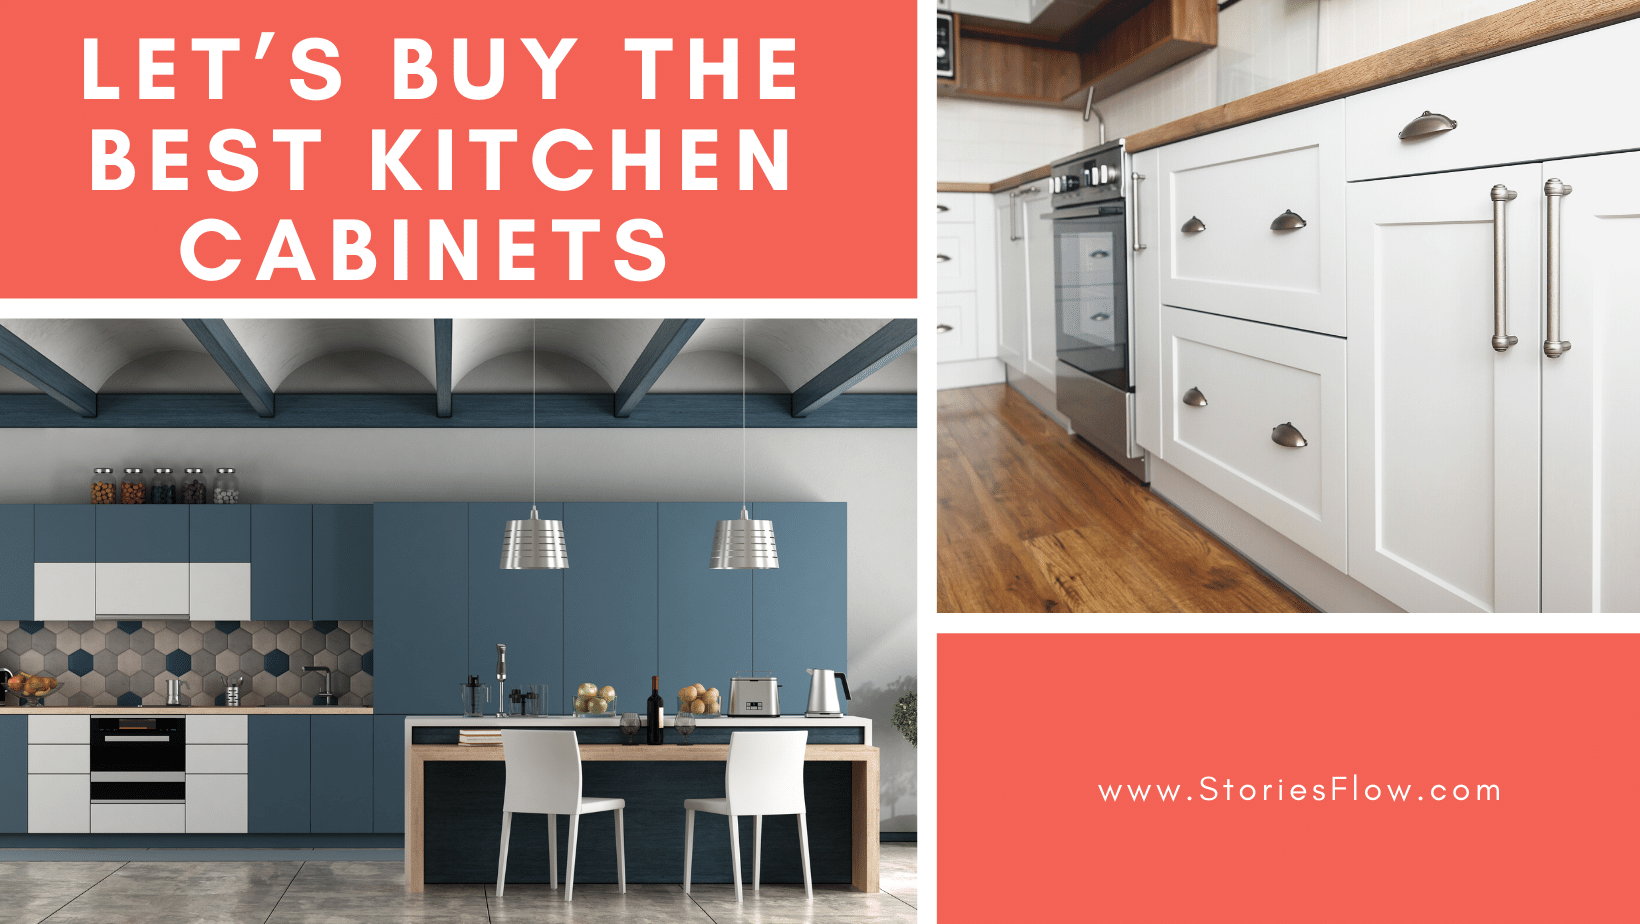 Let's buy the best kitchen cabinets